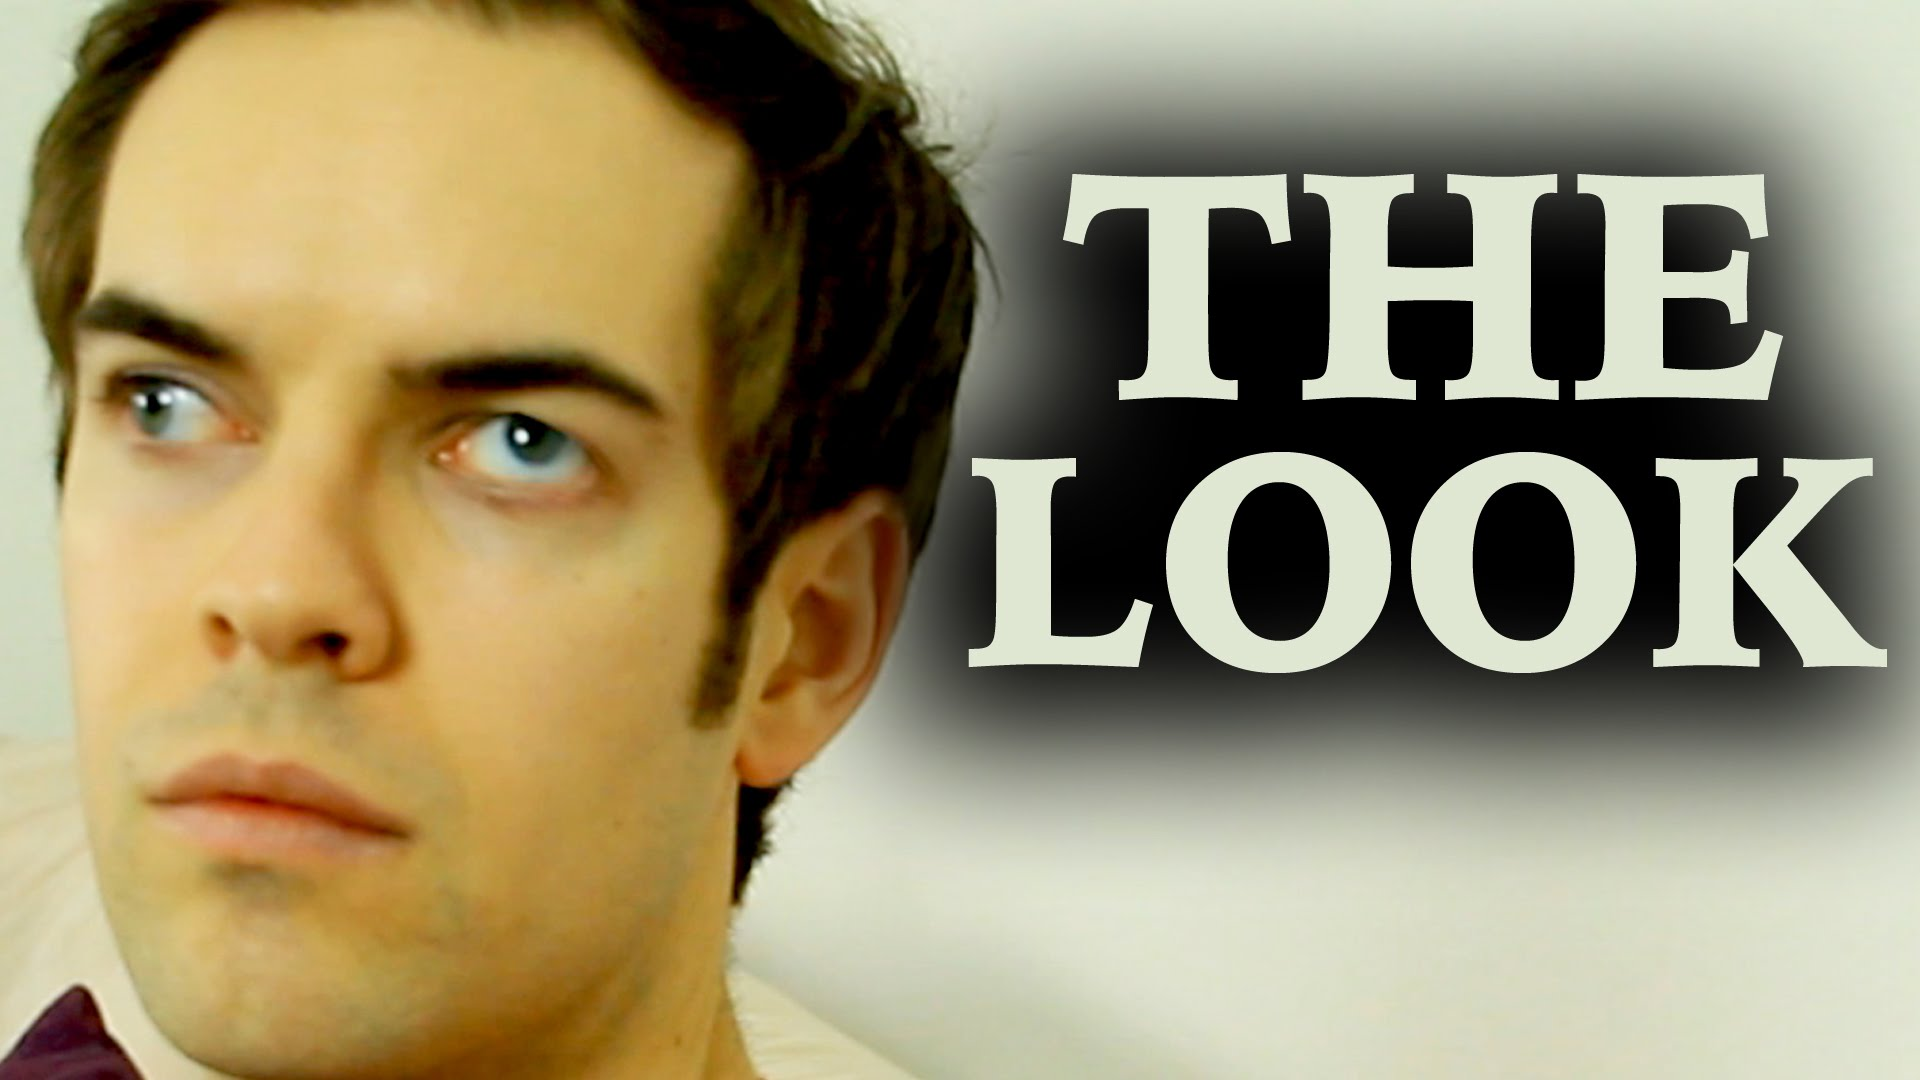 The look photo